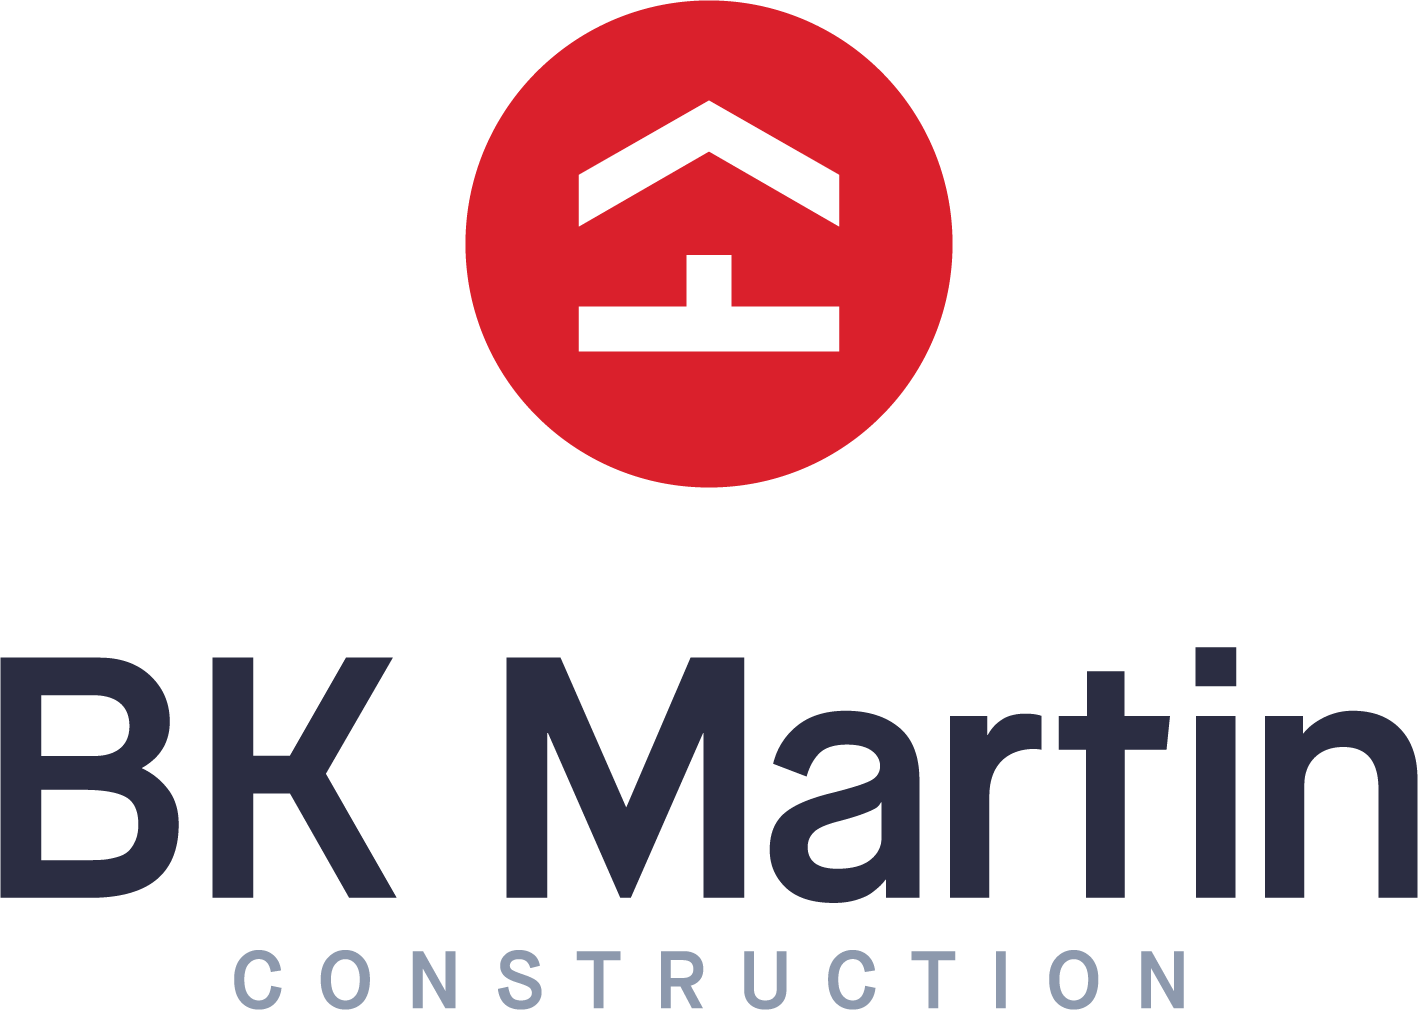 Bk Martin Construction Inc.